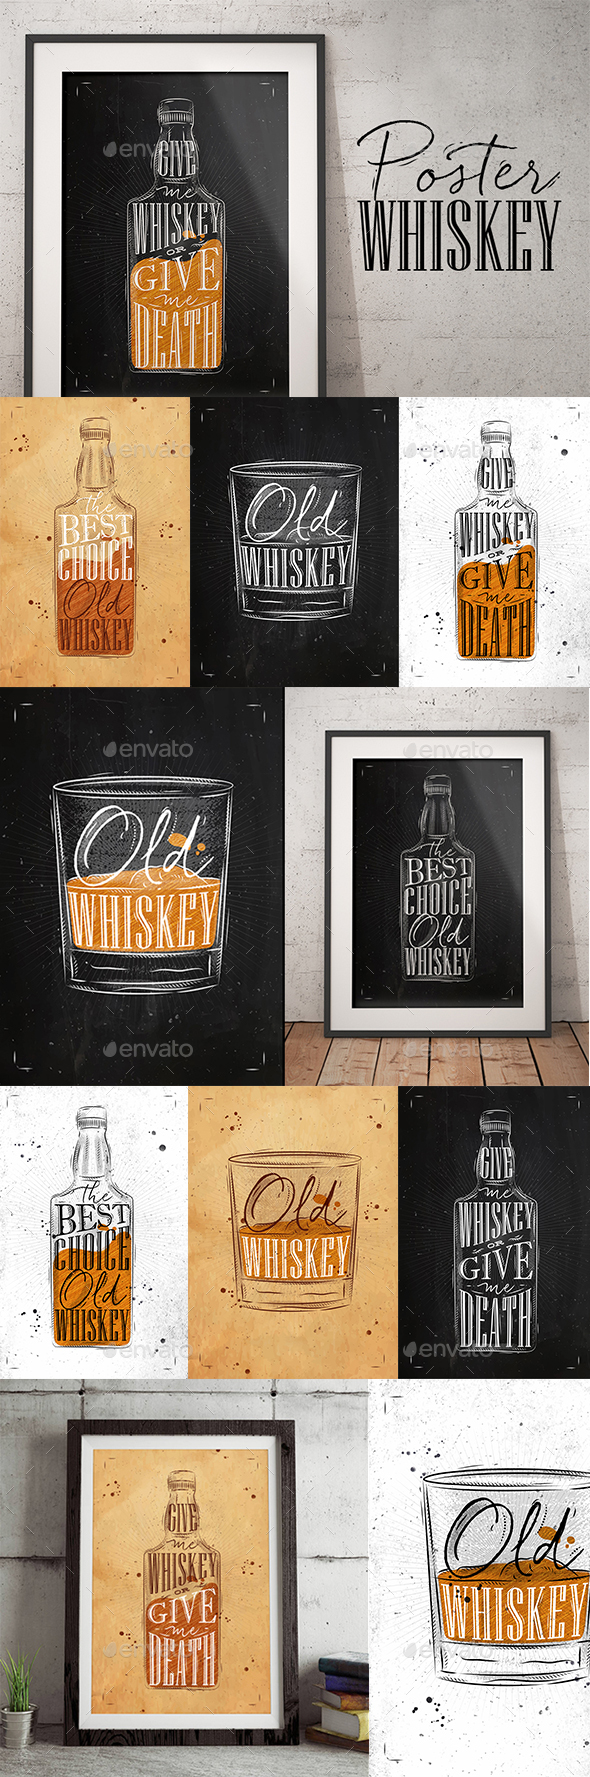 Whiskey Posters - Food Objects